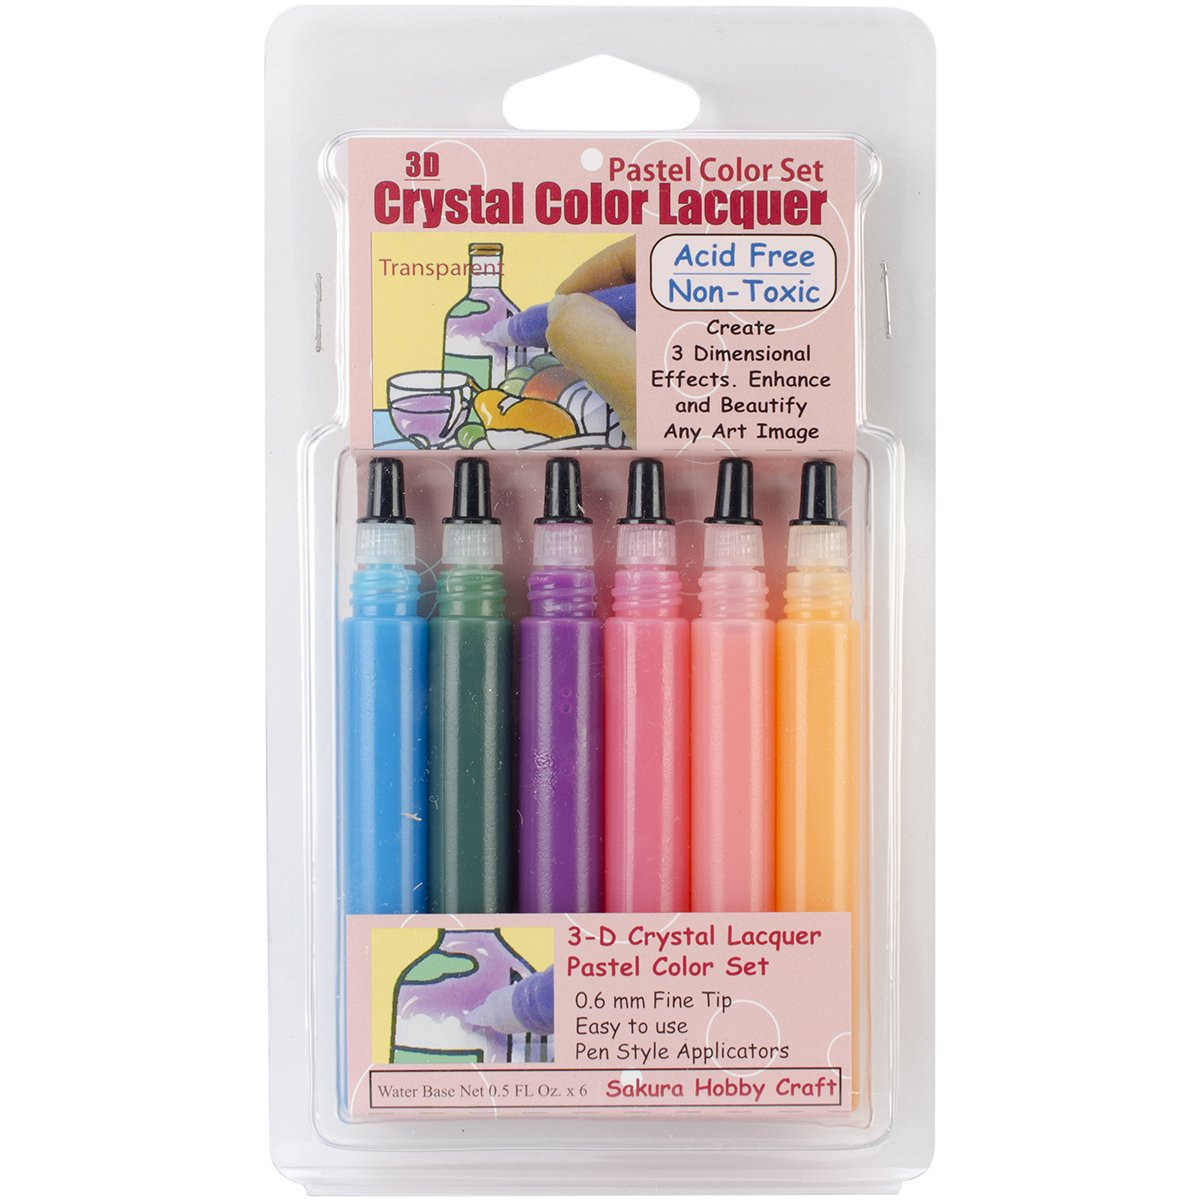 SAKURA HOBBY CRAFT 3D Crystal Lacquer Color Pens, Pastel Notions - In Network 3002